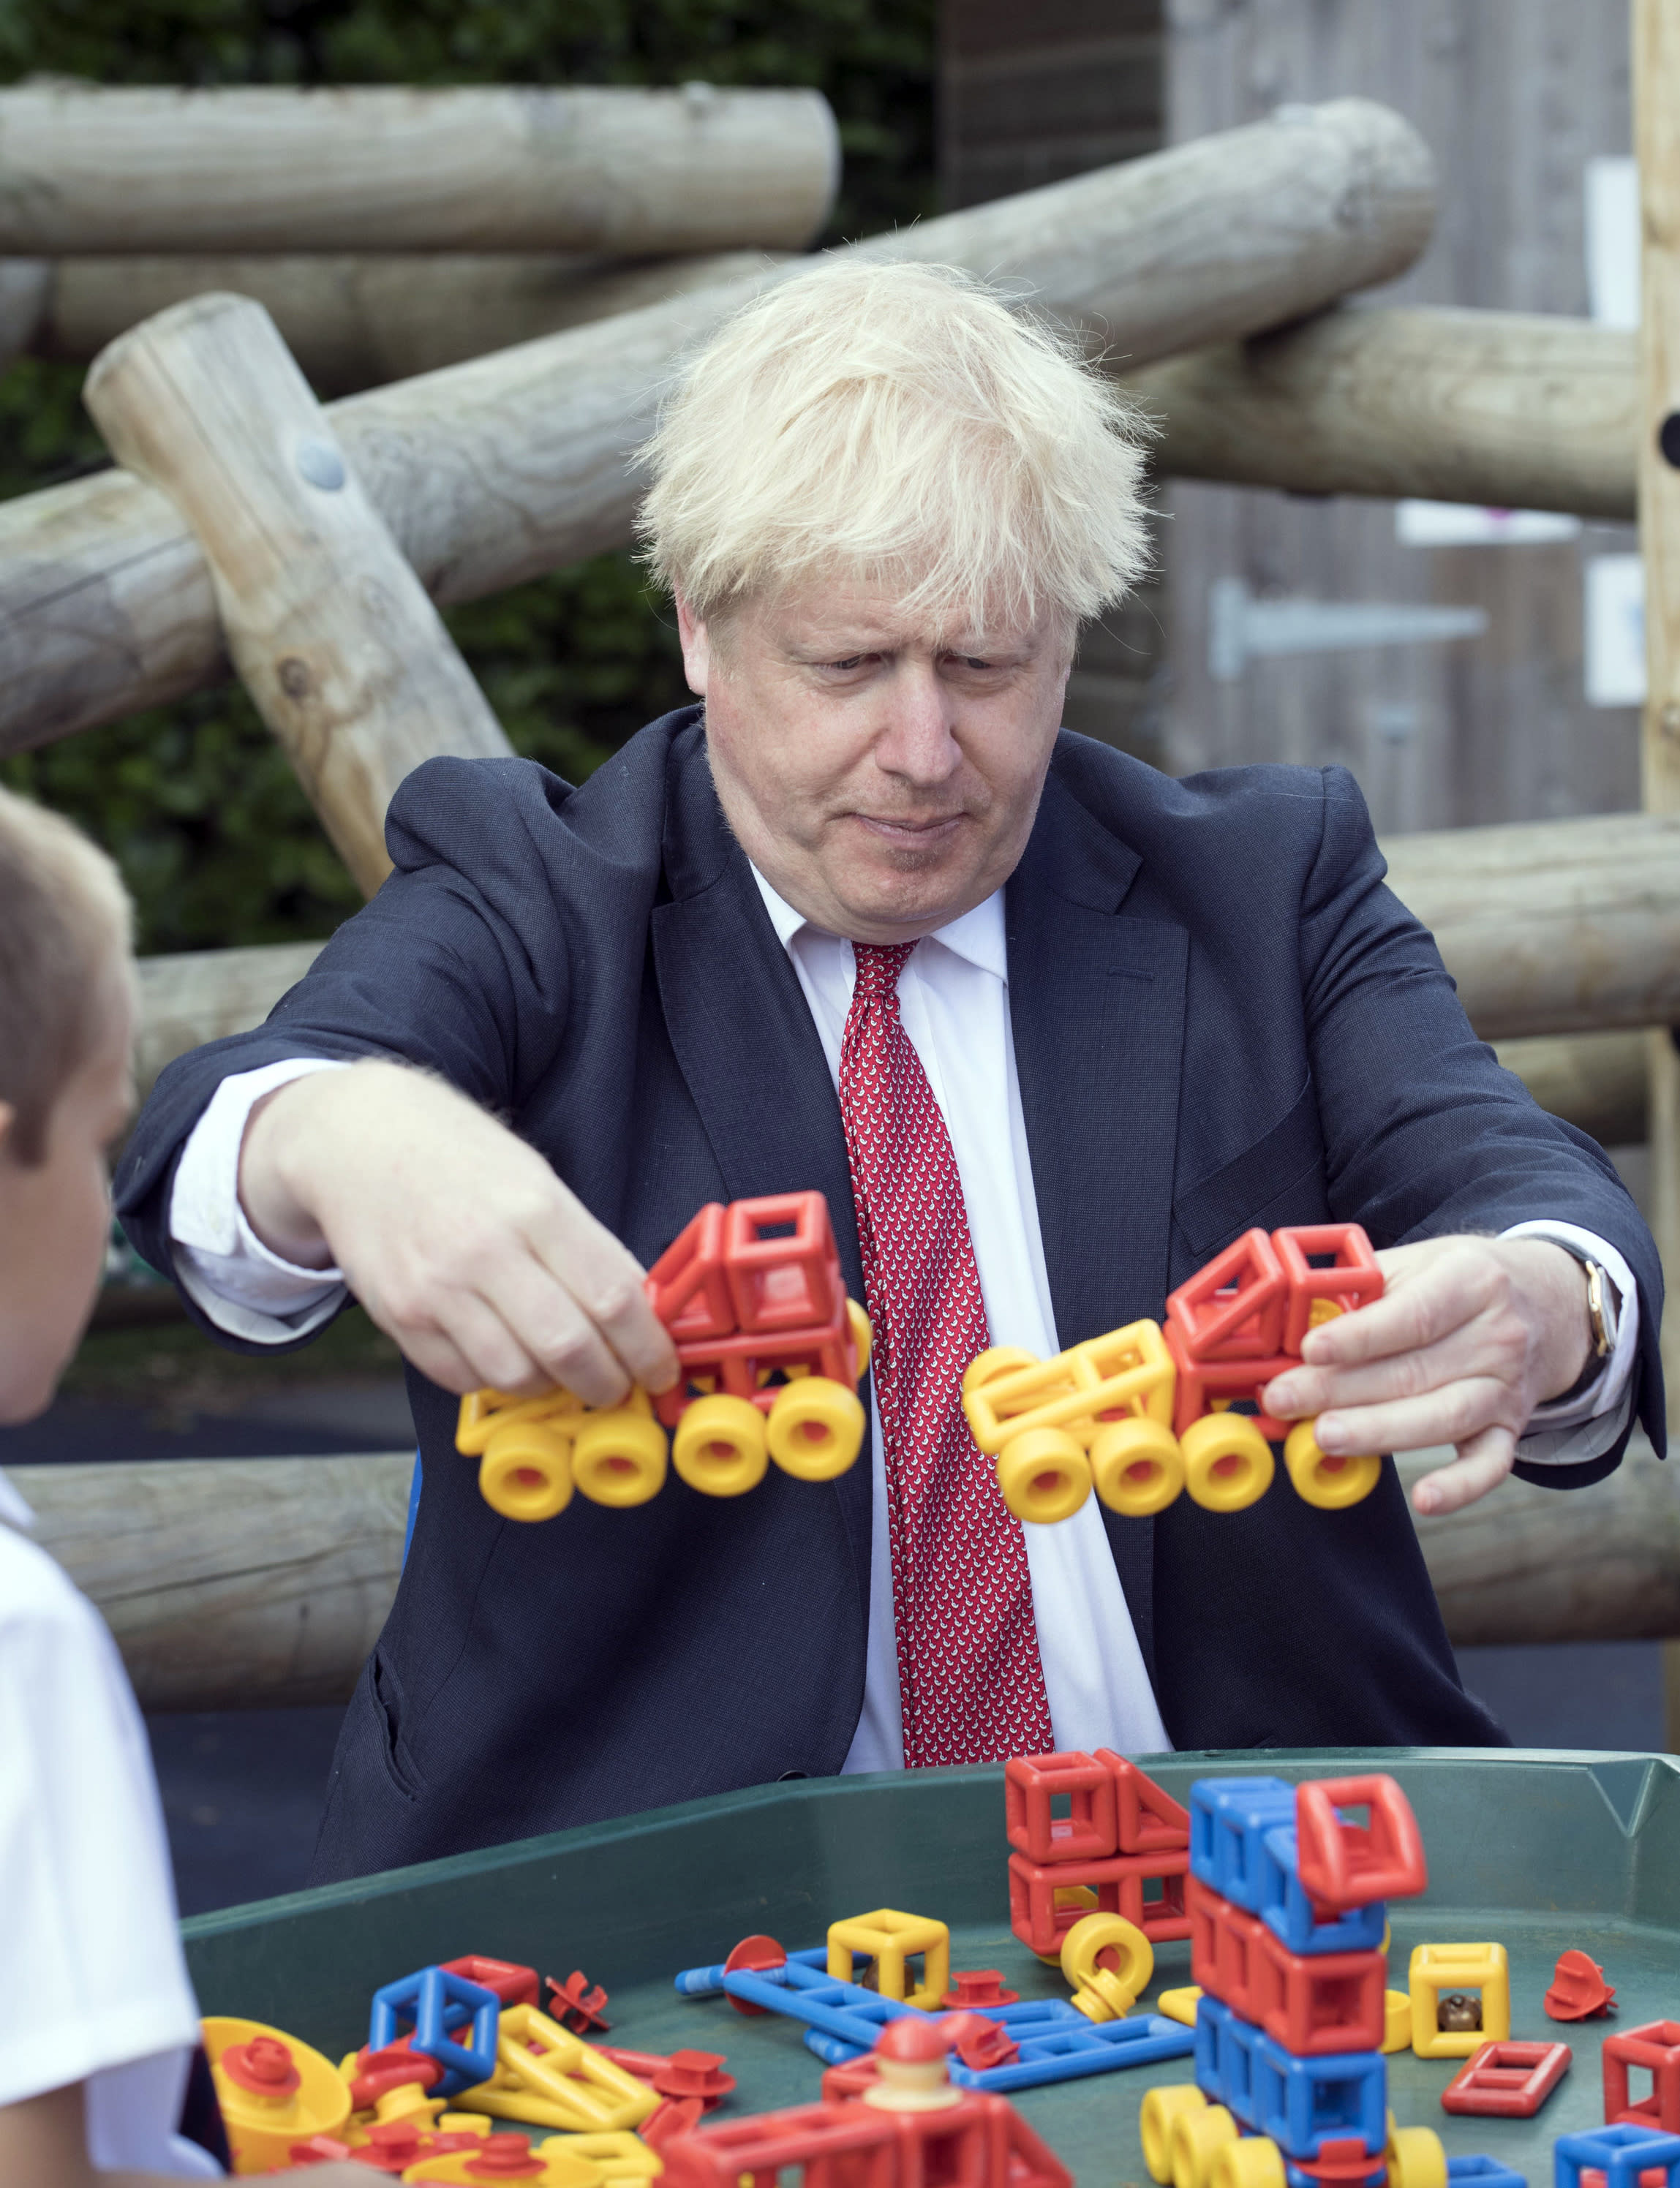 """FILE - In this July 20, 2020, file photo, Britain's Prime Minister Boris Johnson visits The Discovery School in West Malling, England. Britain's prime minister is asking parents to set aside their fears and send their children back to school next month when the nation's schools fully reopen for the first time since the coronavirus pandemic shut then down more than five months ago. Johnson said it was the government's """"moral duty'' to reopen the schools as he stressed that authorities now know more about COVID-19 than they did when the country went into lockdown on March 23. (Jeremy Selwyn/Evening Standard via AP, Pool, File)"""